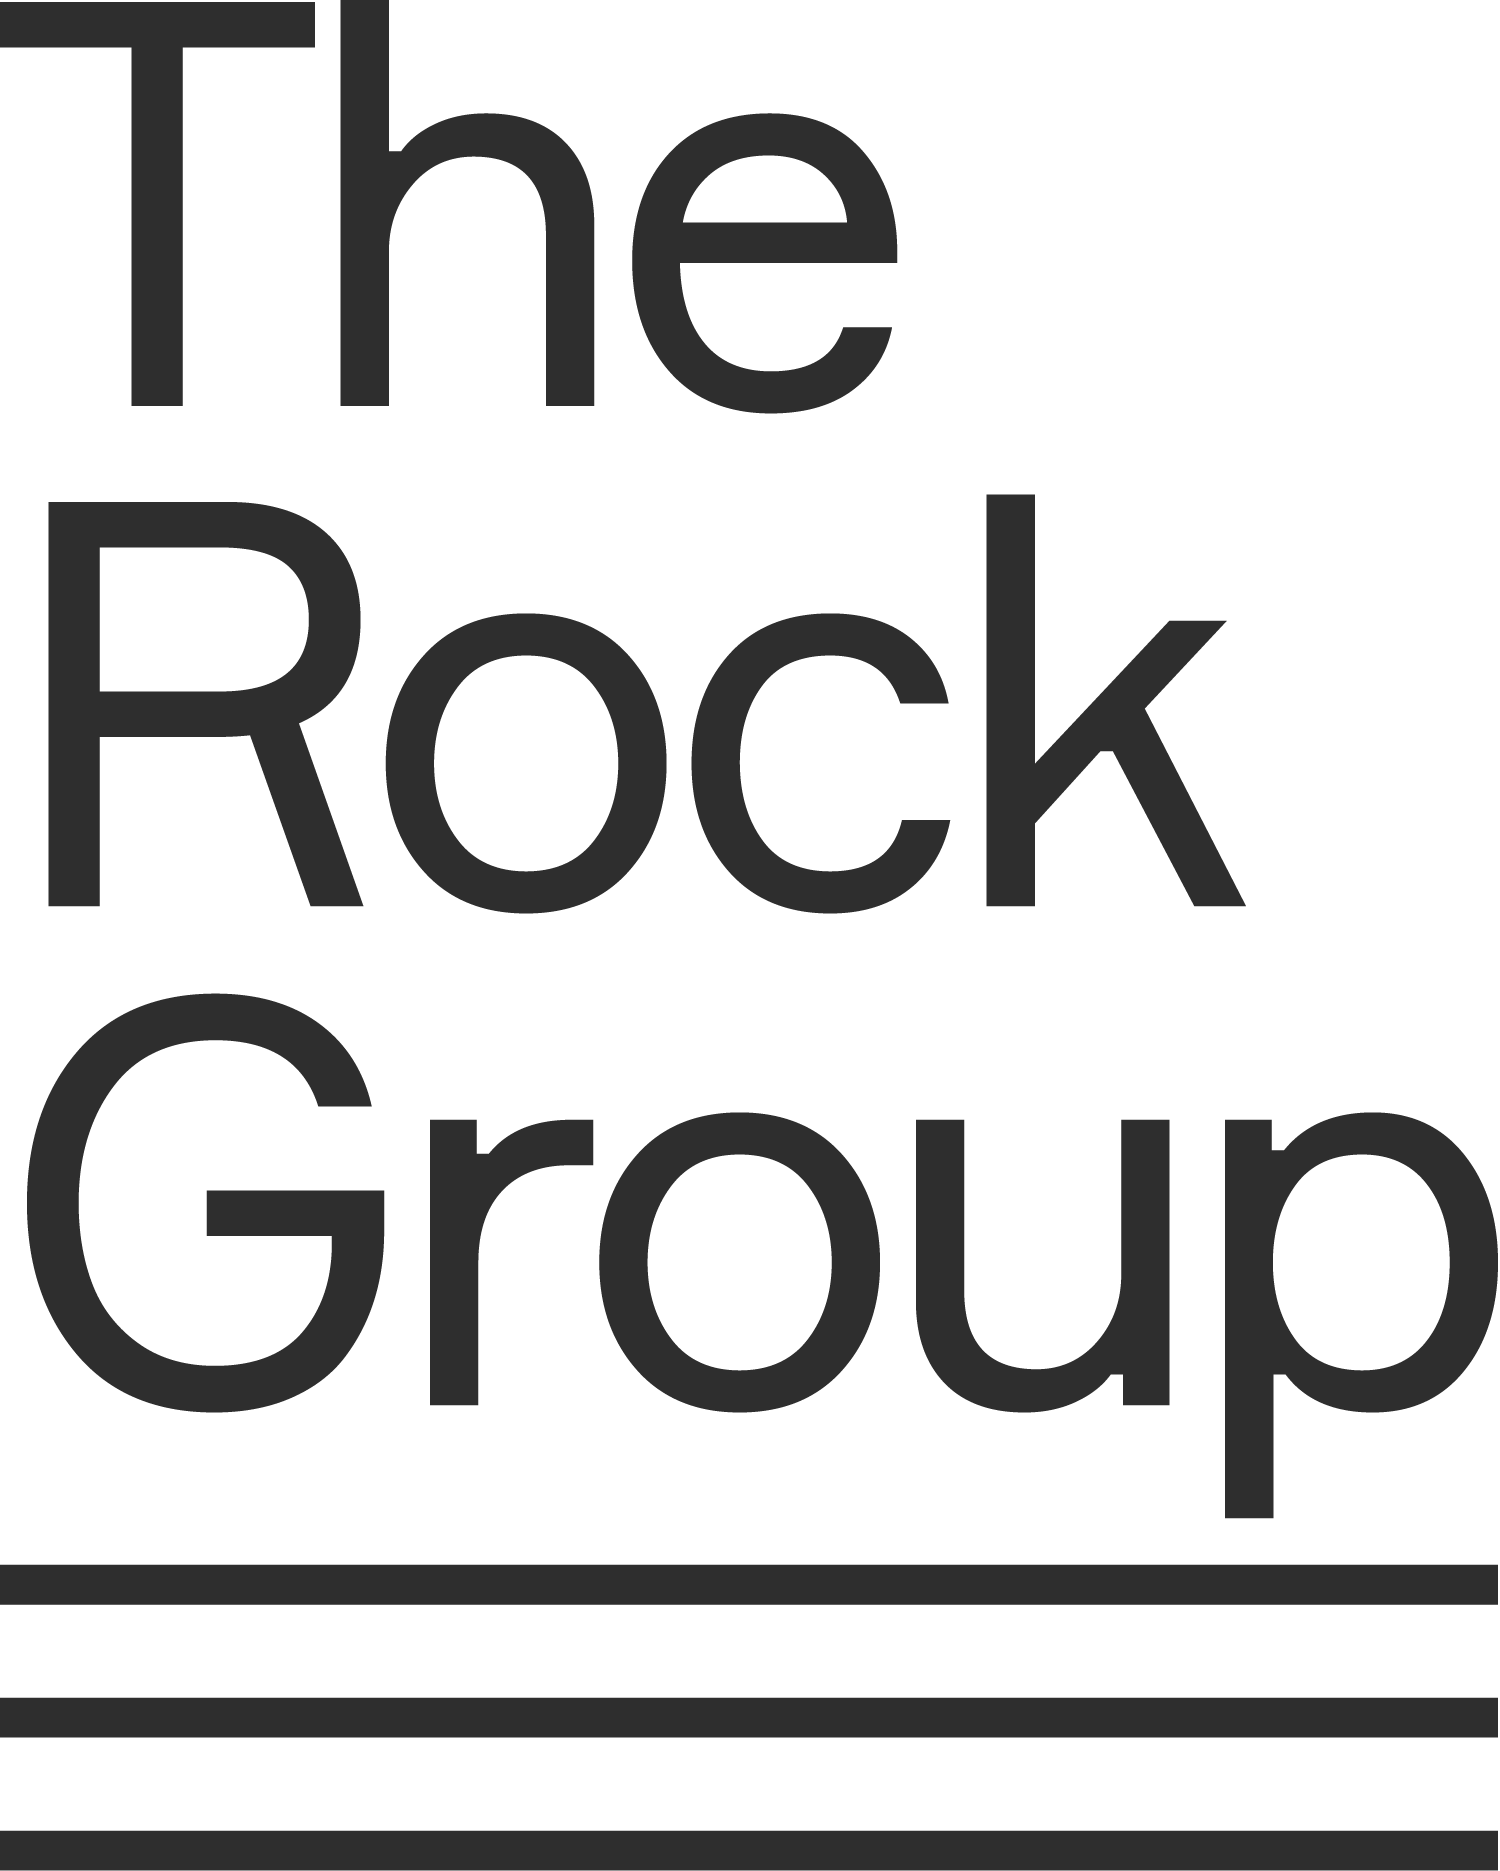 The Rock Group